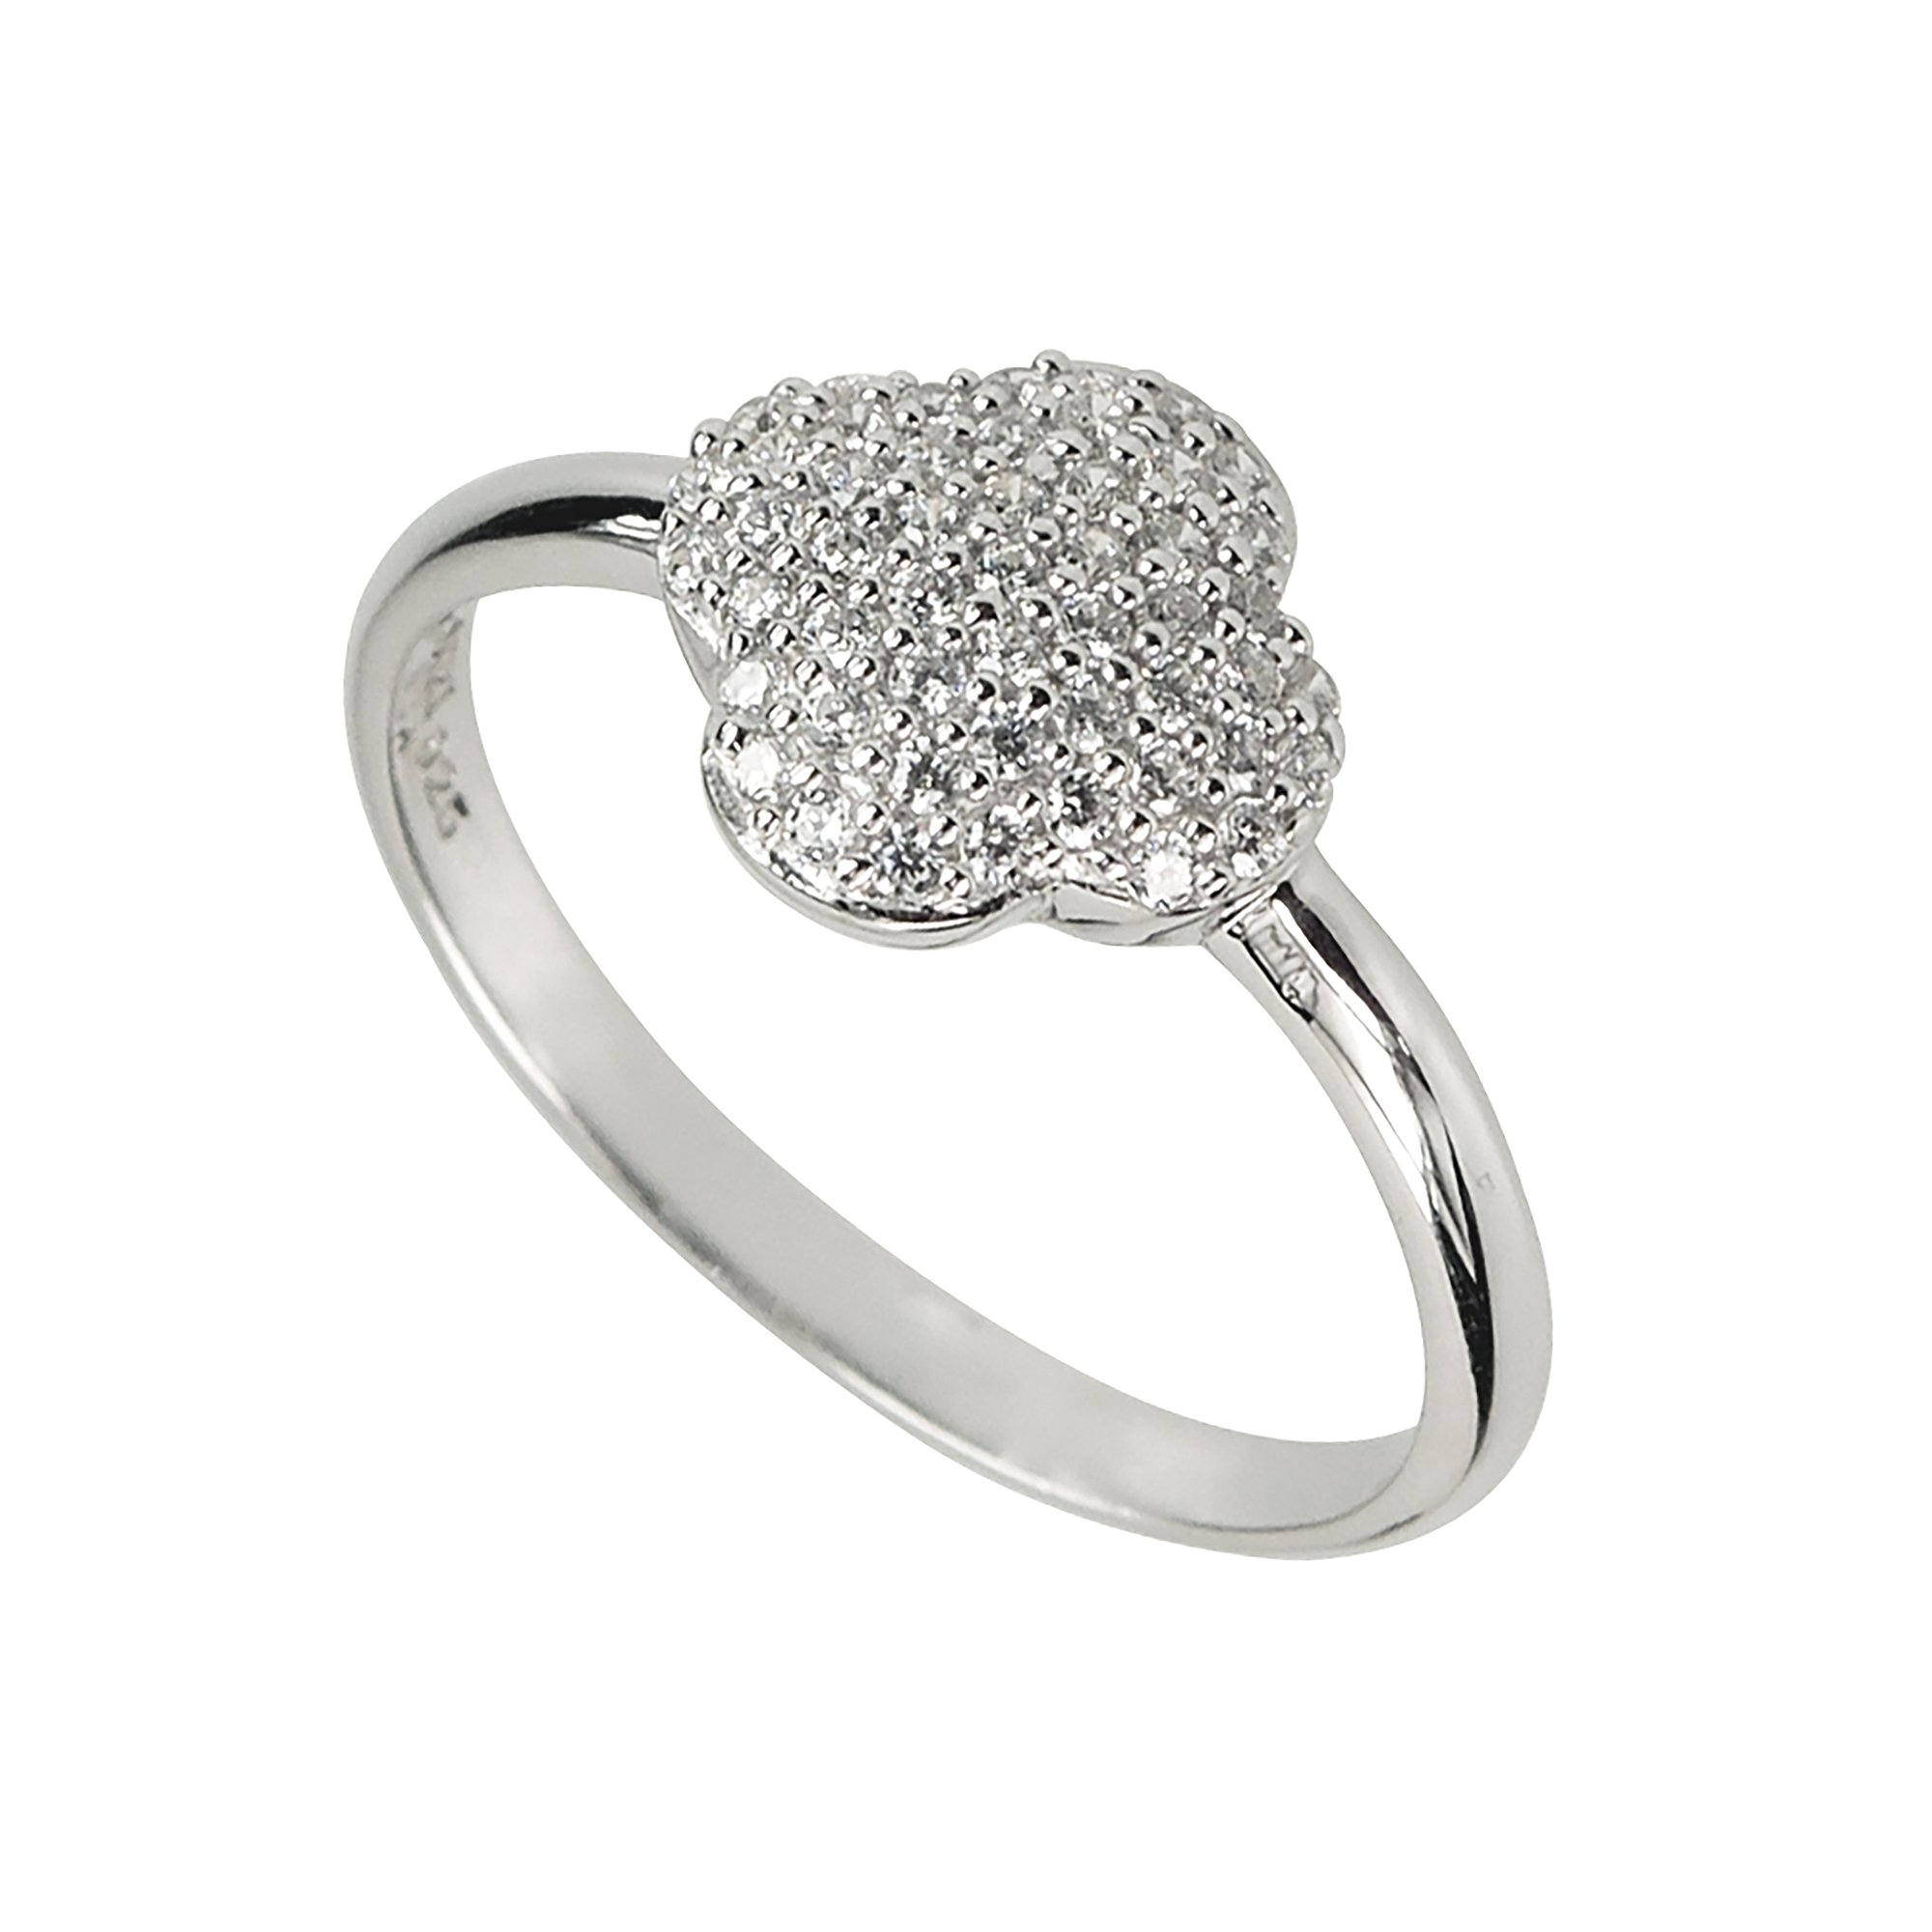 Aura by TJM Sterling Silver Micropave 0.20 cts White CZ Scallop Ring by Aura by TJM (Image #2)